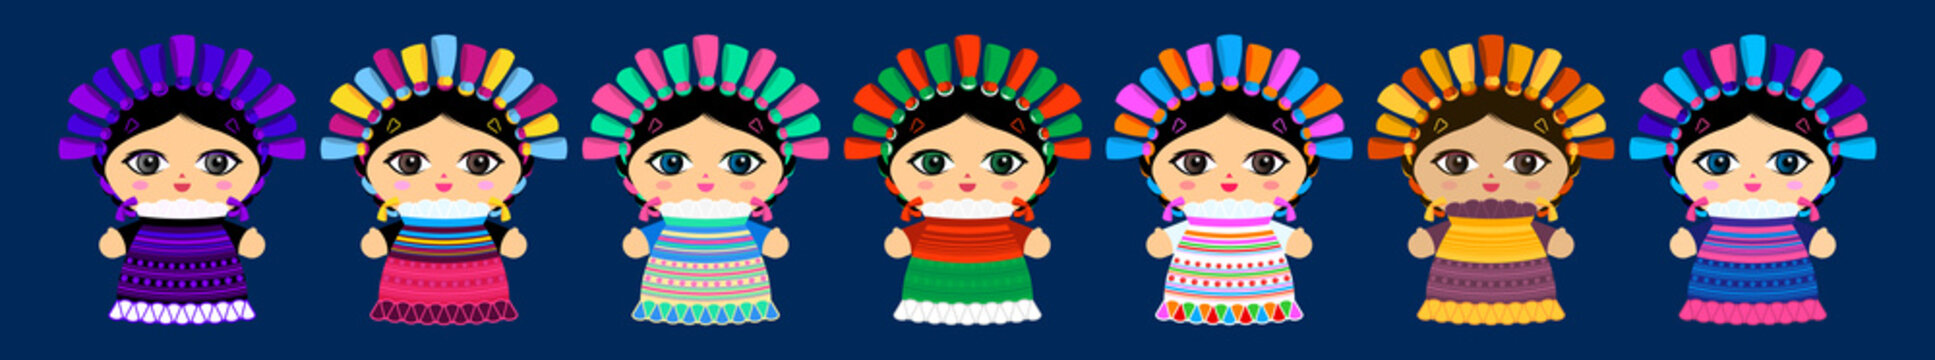 Traditional Doll Mexican master collection vector illustration.